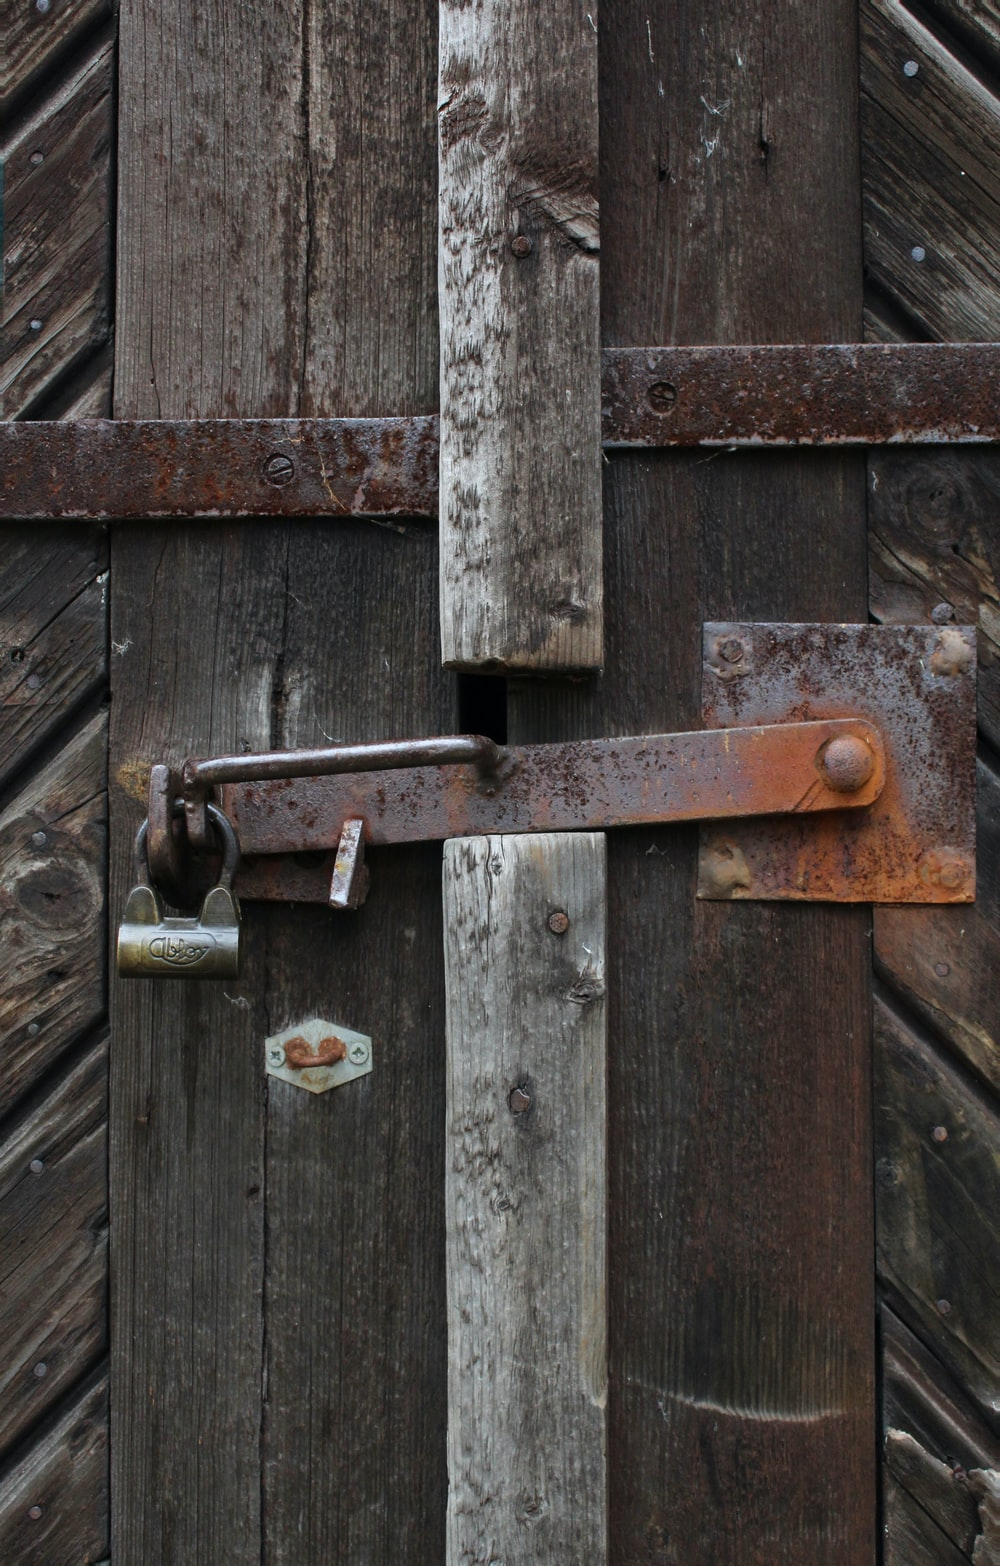 padlock on brown wooden fence